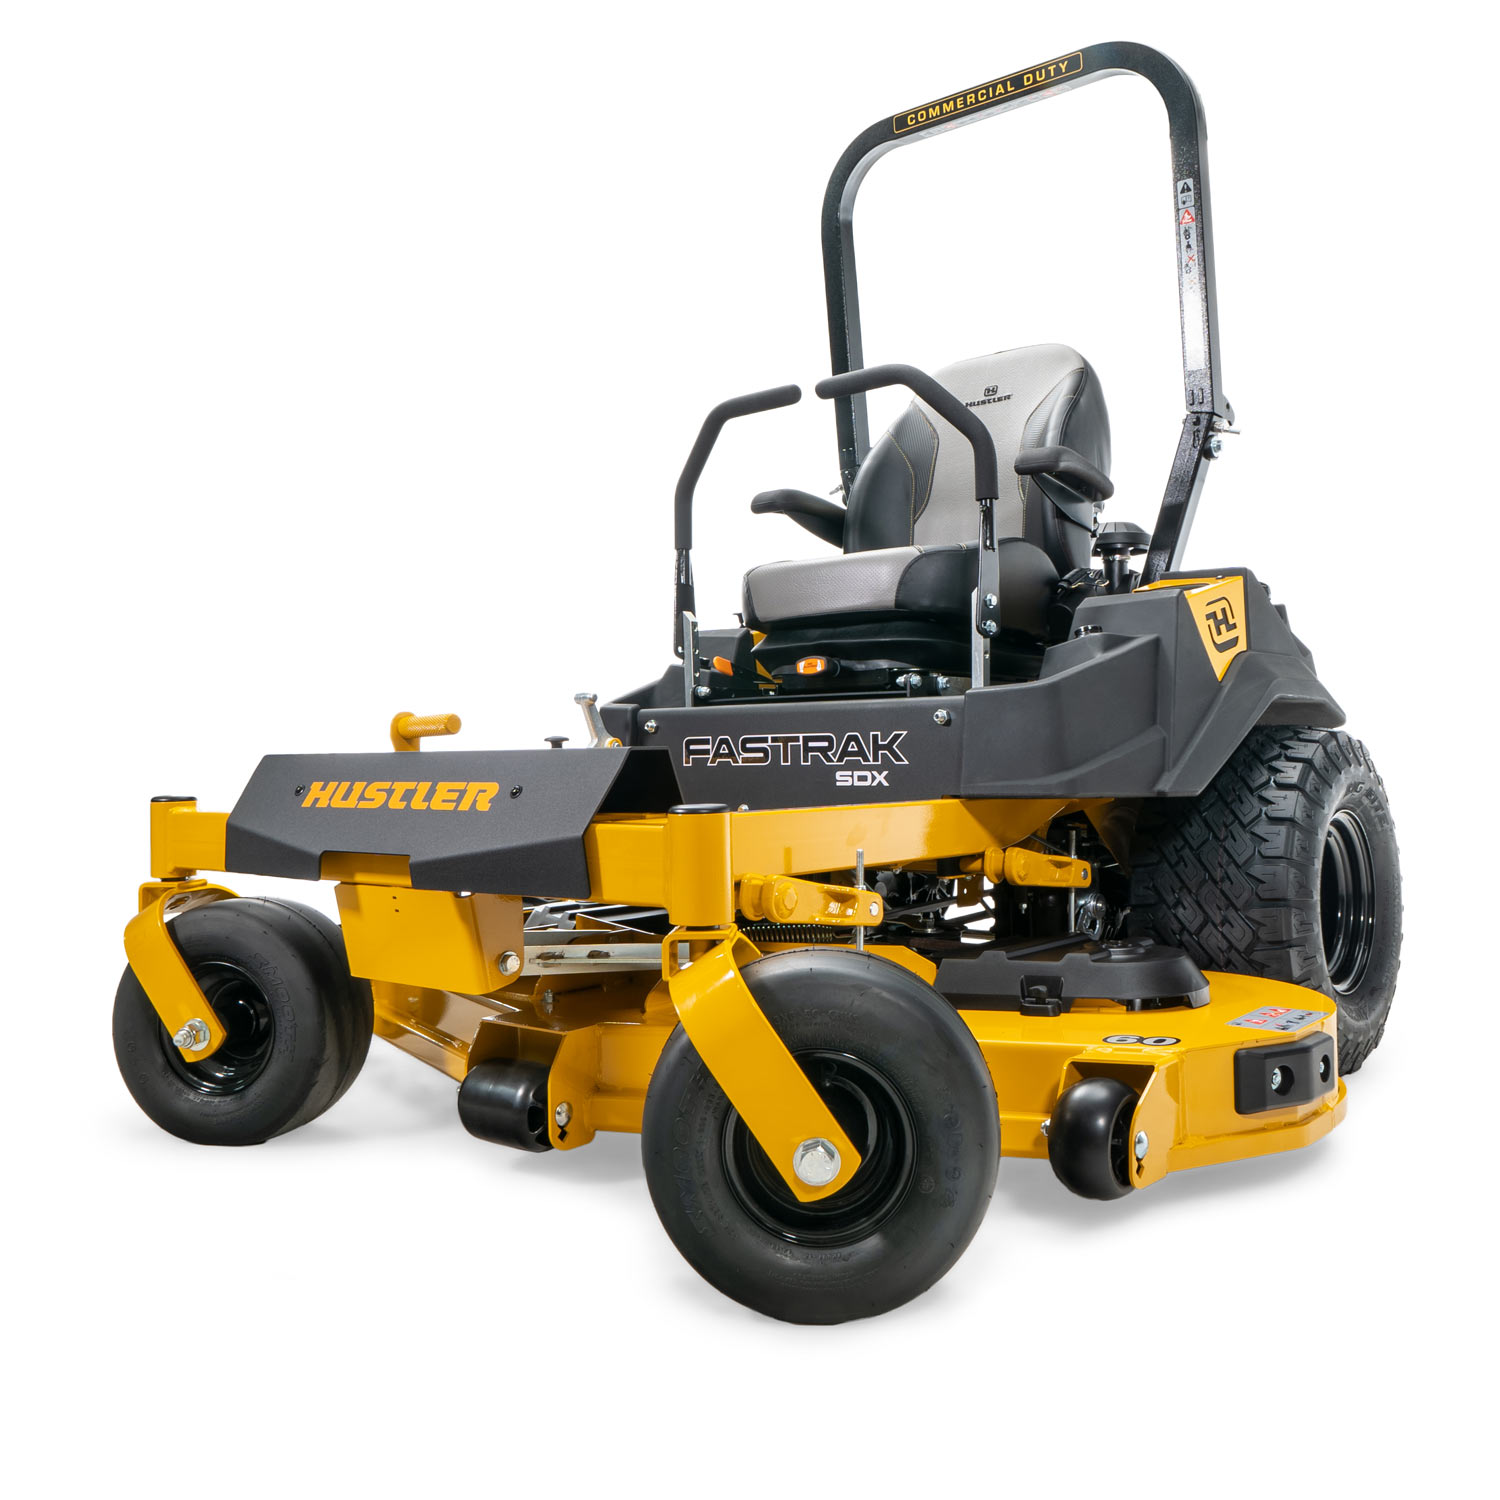 Image of the front of a yellow mower